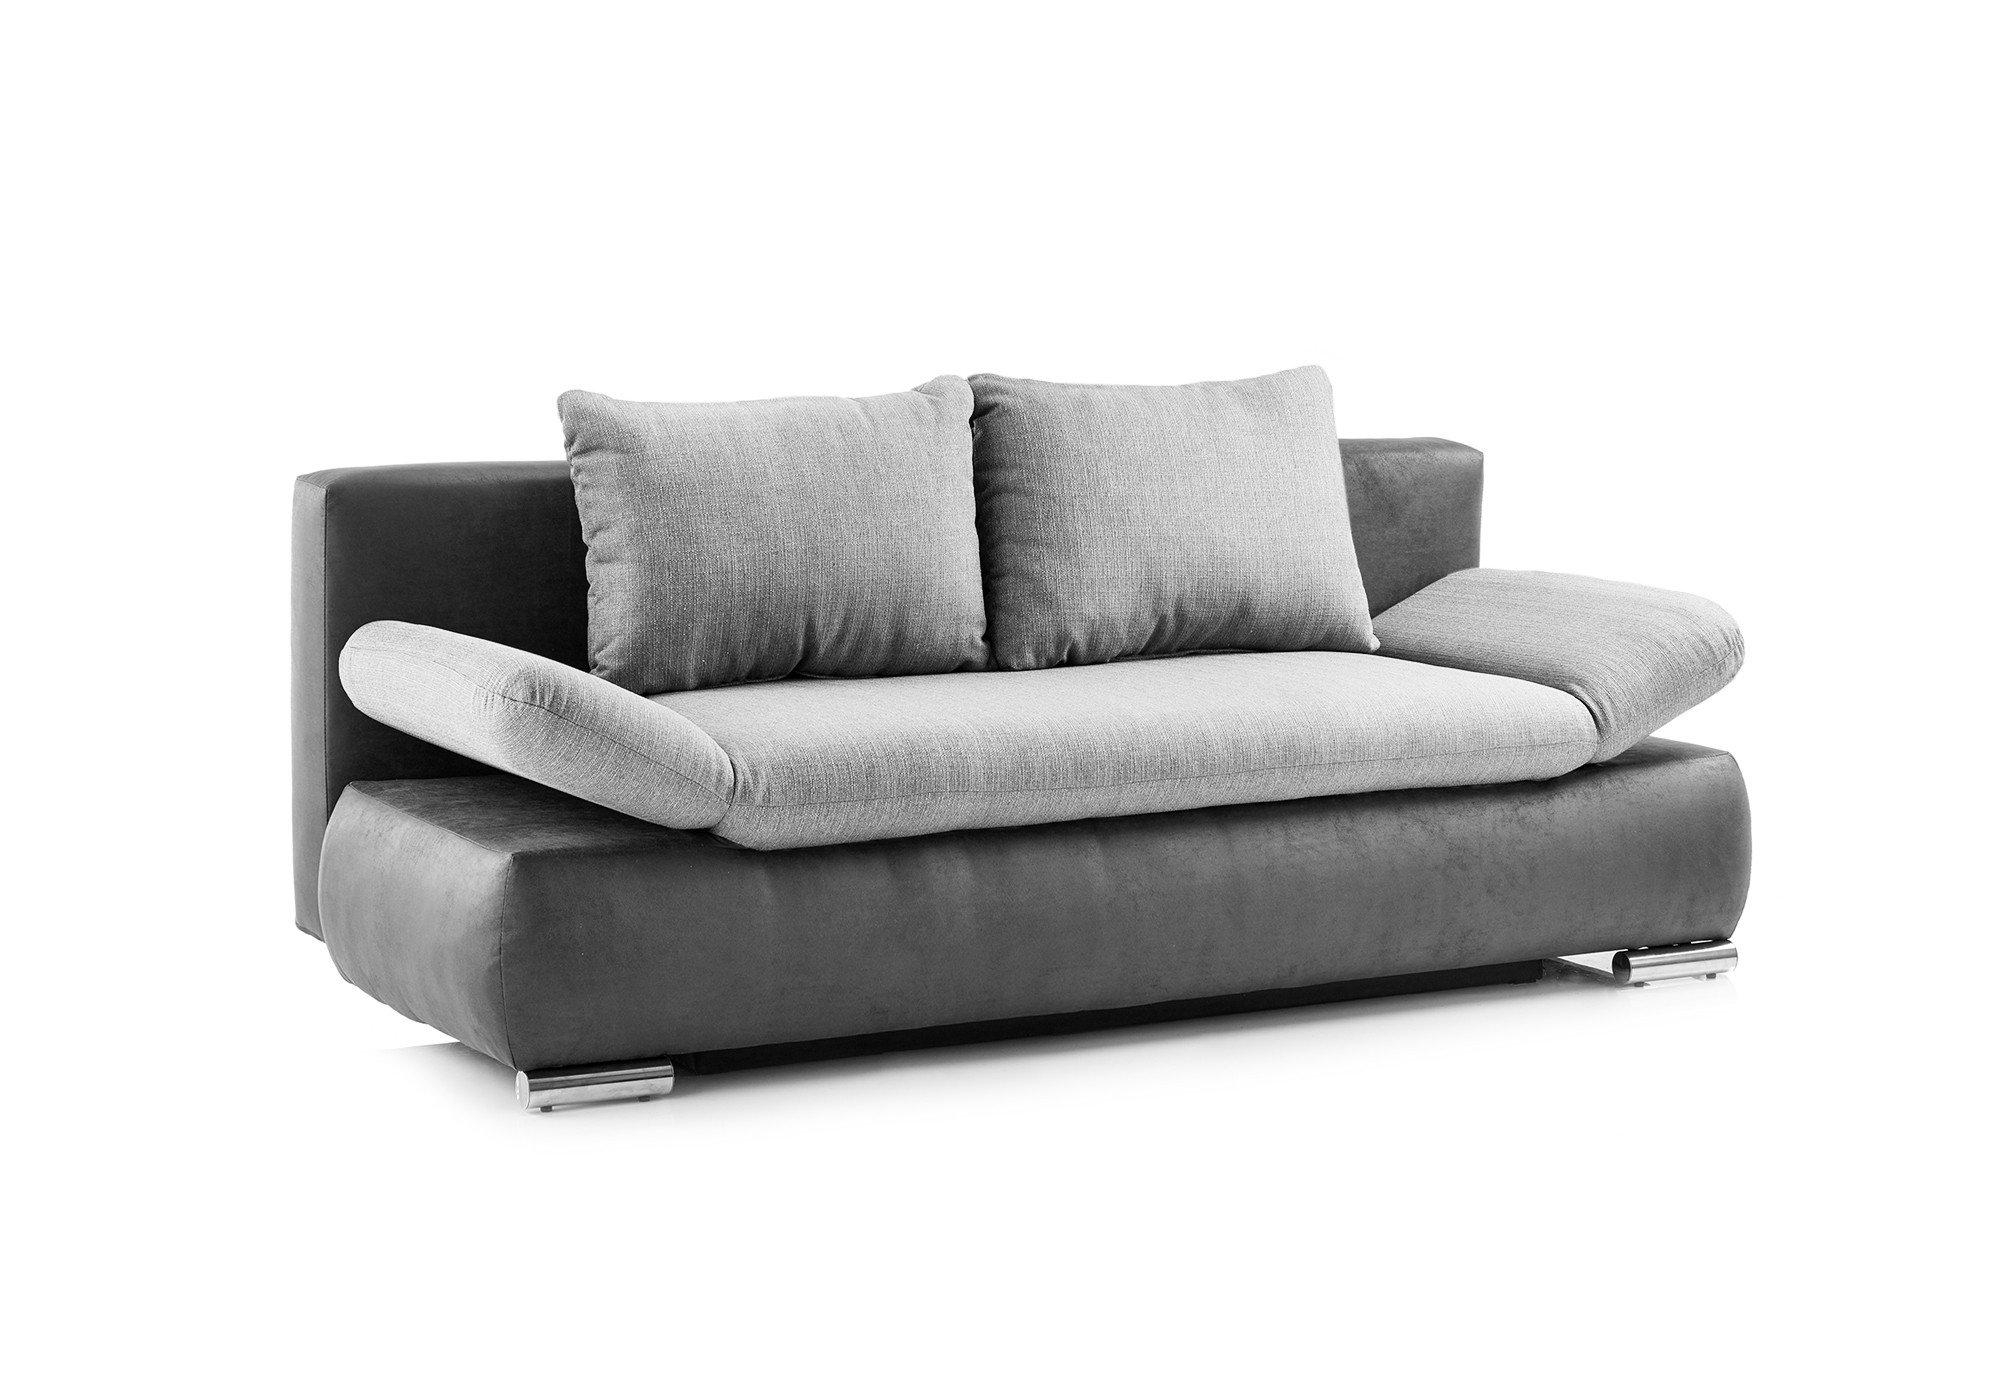 Mini Sofa 20 Best Collection Of Mini Sofa Sleepers Sofa Ideas